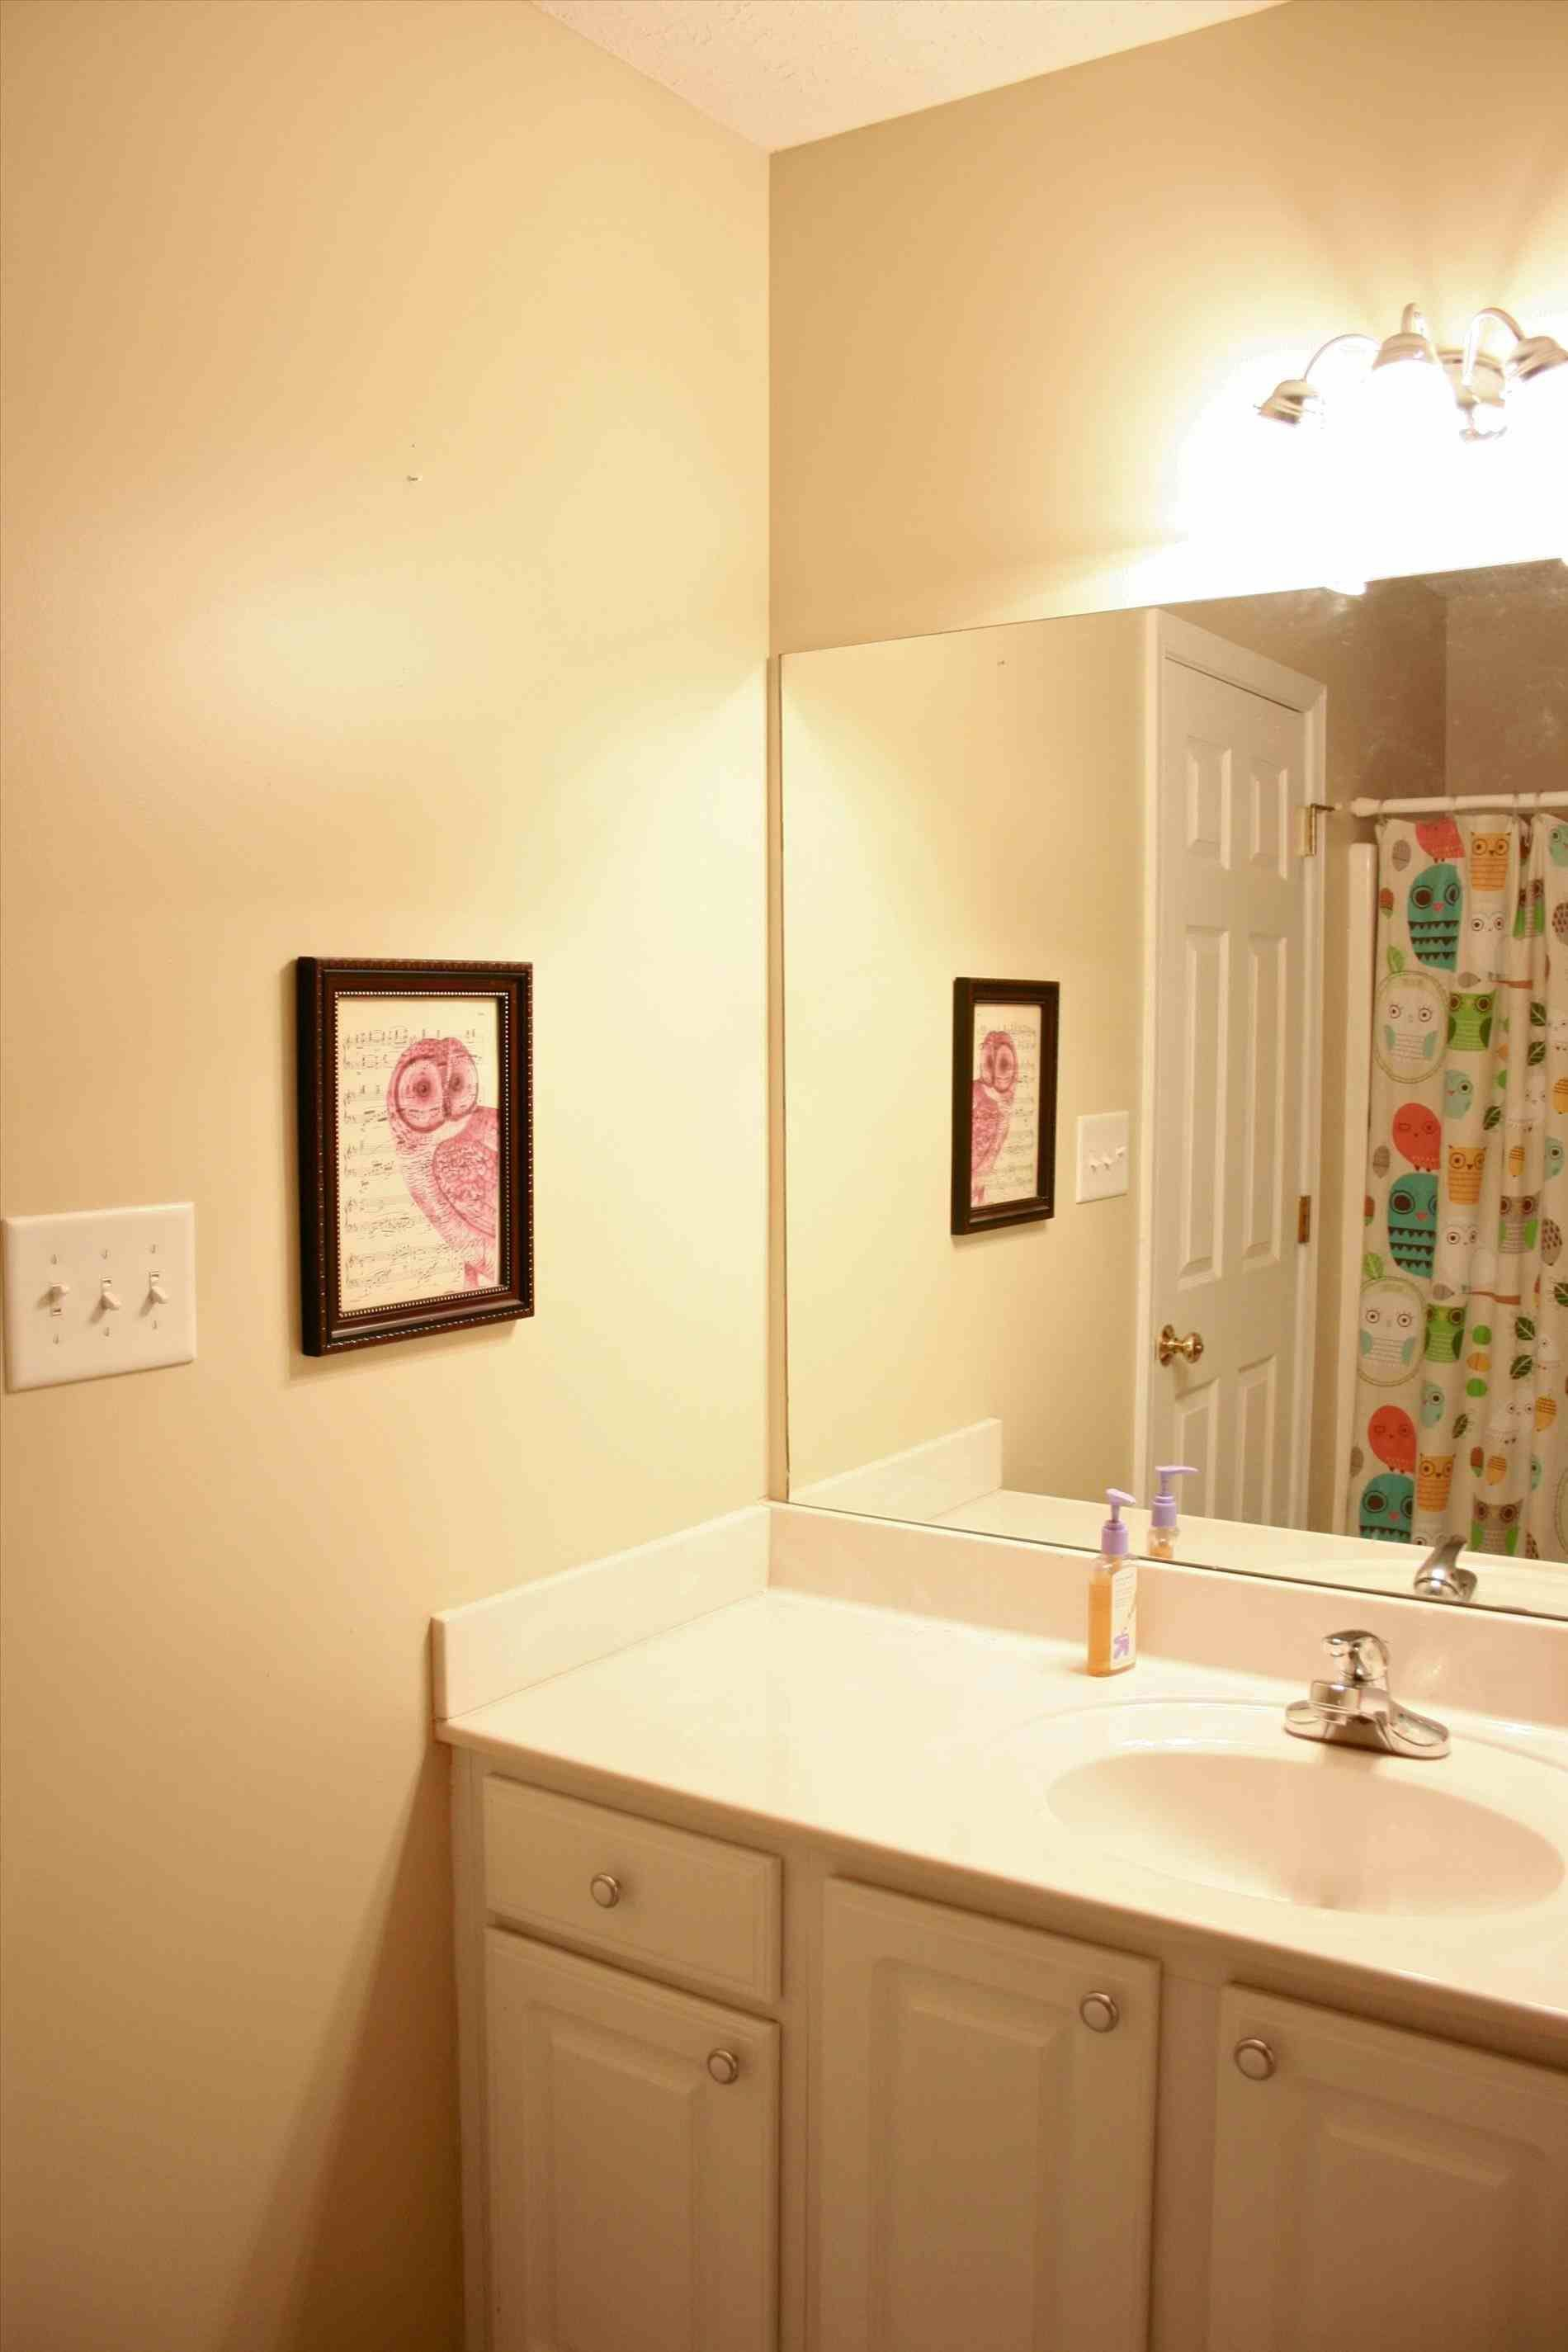 New Post diy bathroom wall decor ideas visit Bobayule Trending ...